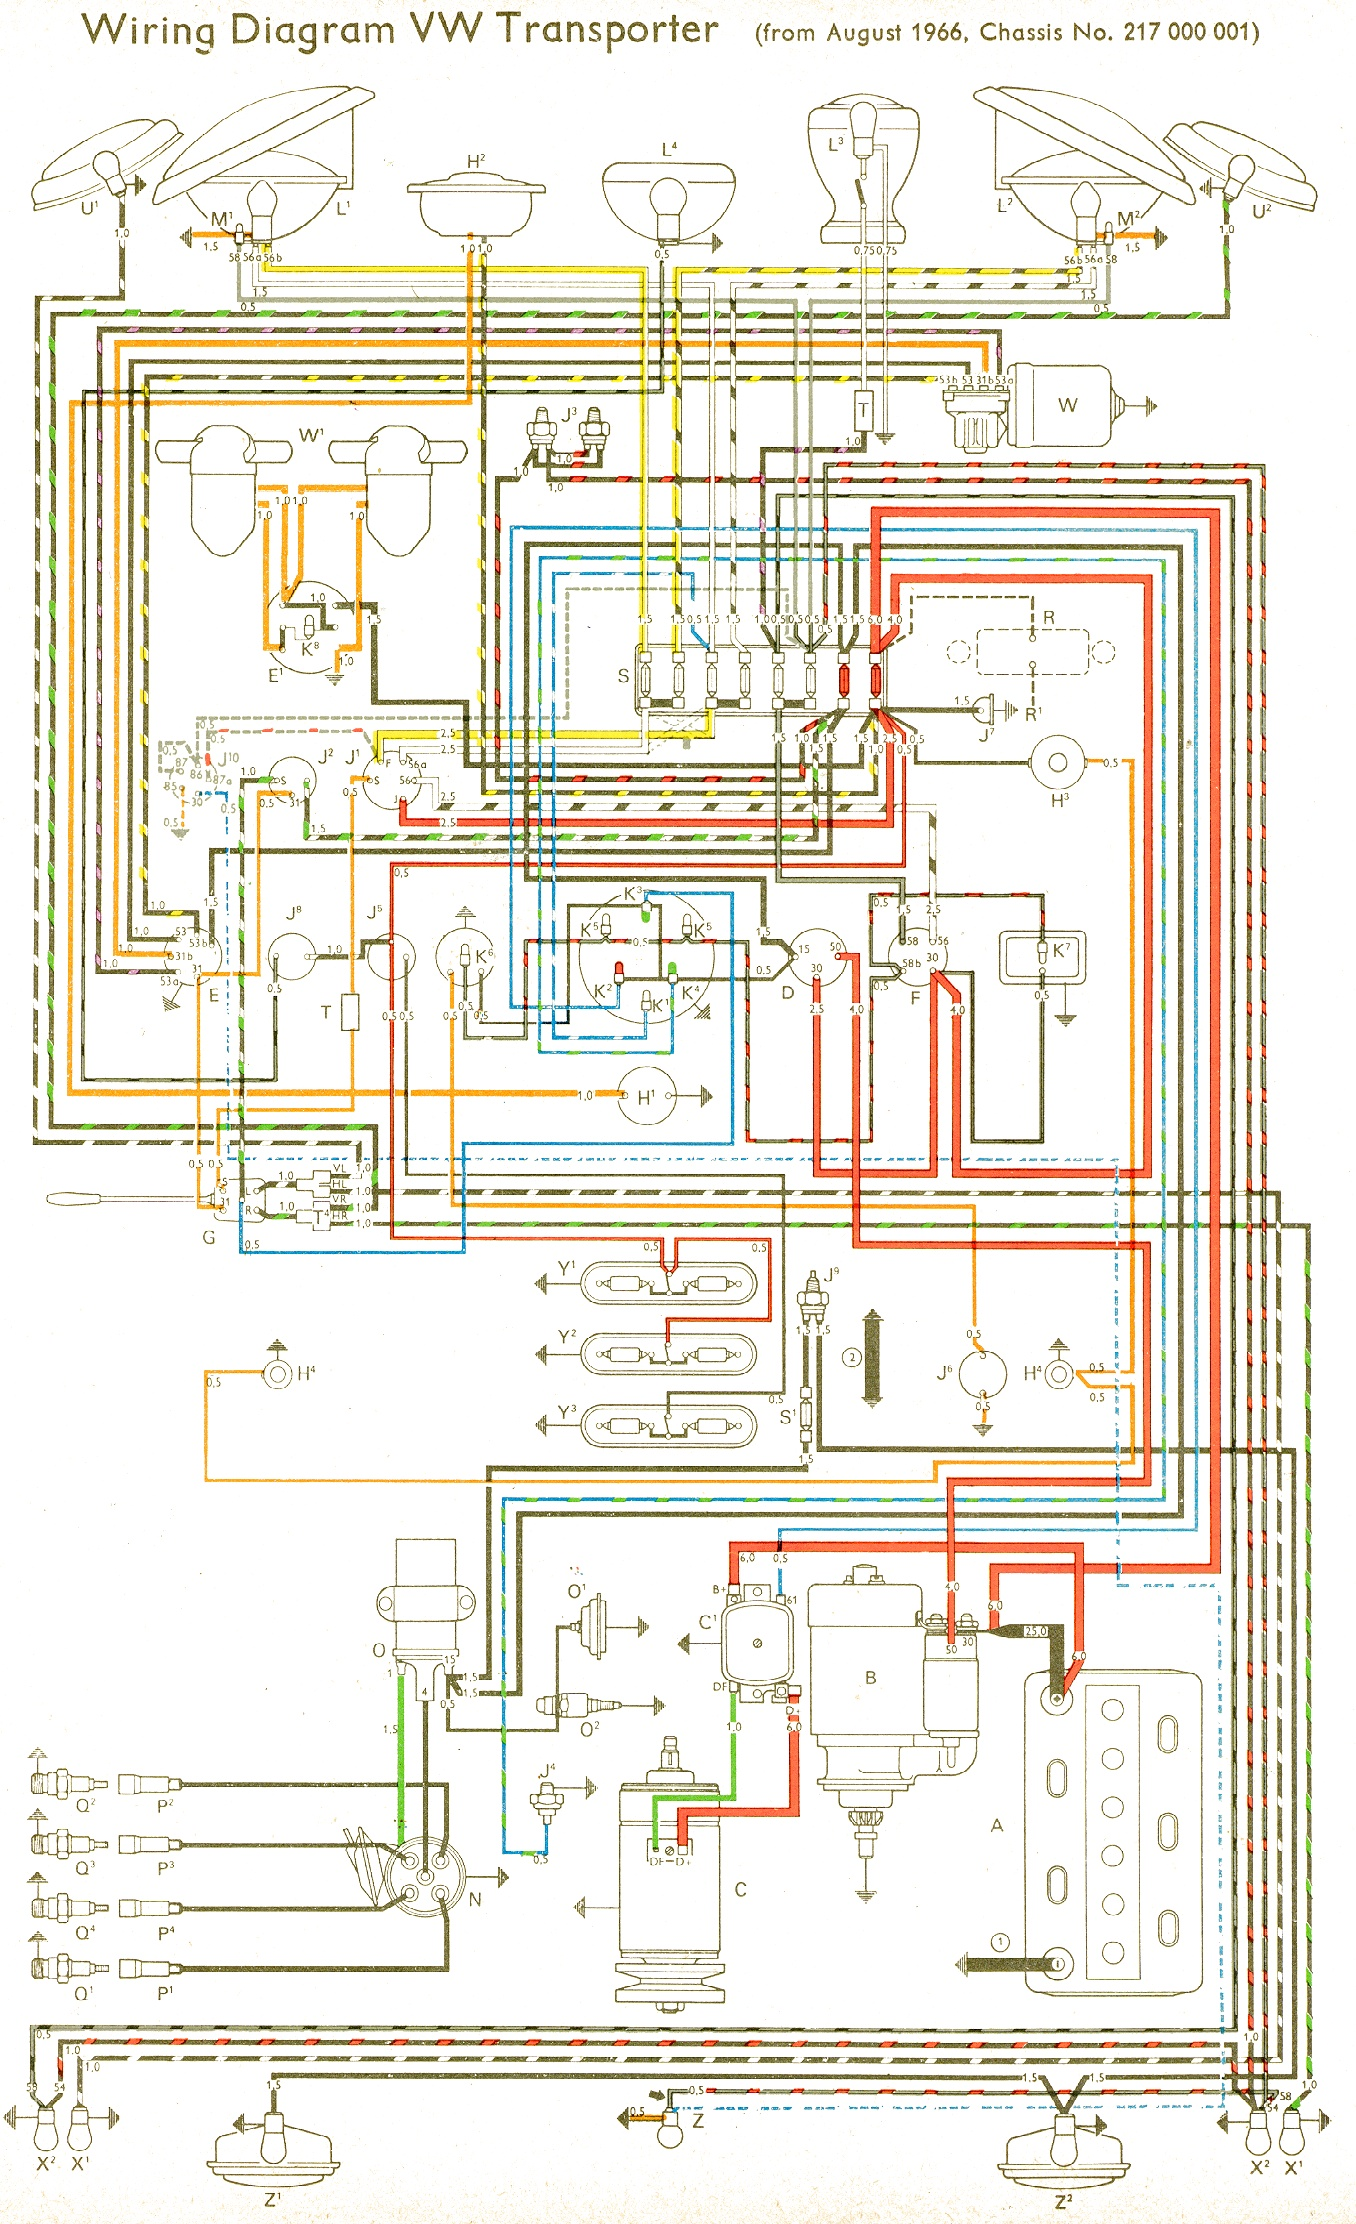 bus 66 vw wiring diagrams 1970 vw beetle wiring diagram at bayanpartner.co